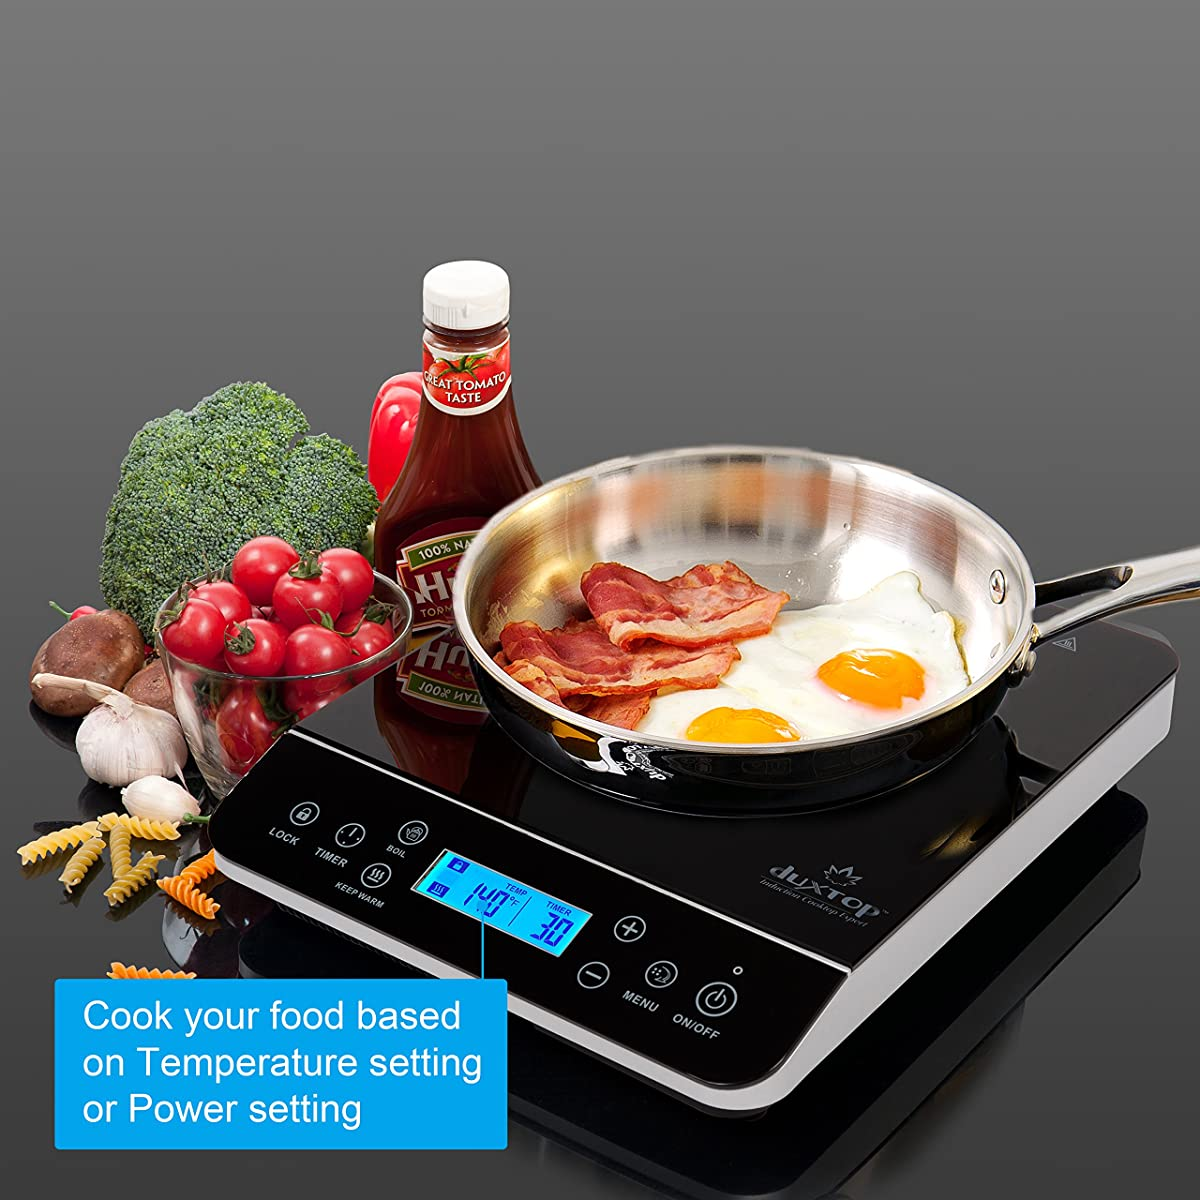 Duxtop LCD 1800-Watt Portable Induction Cooktop Countertop Burner 9600LS